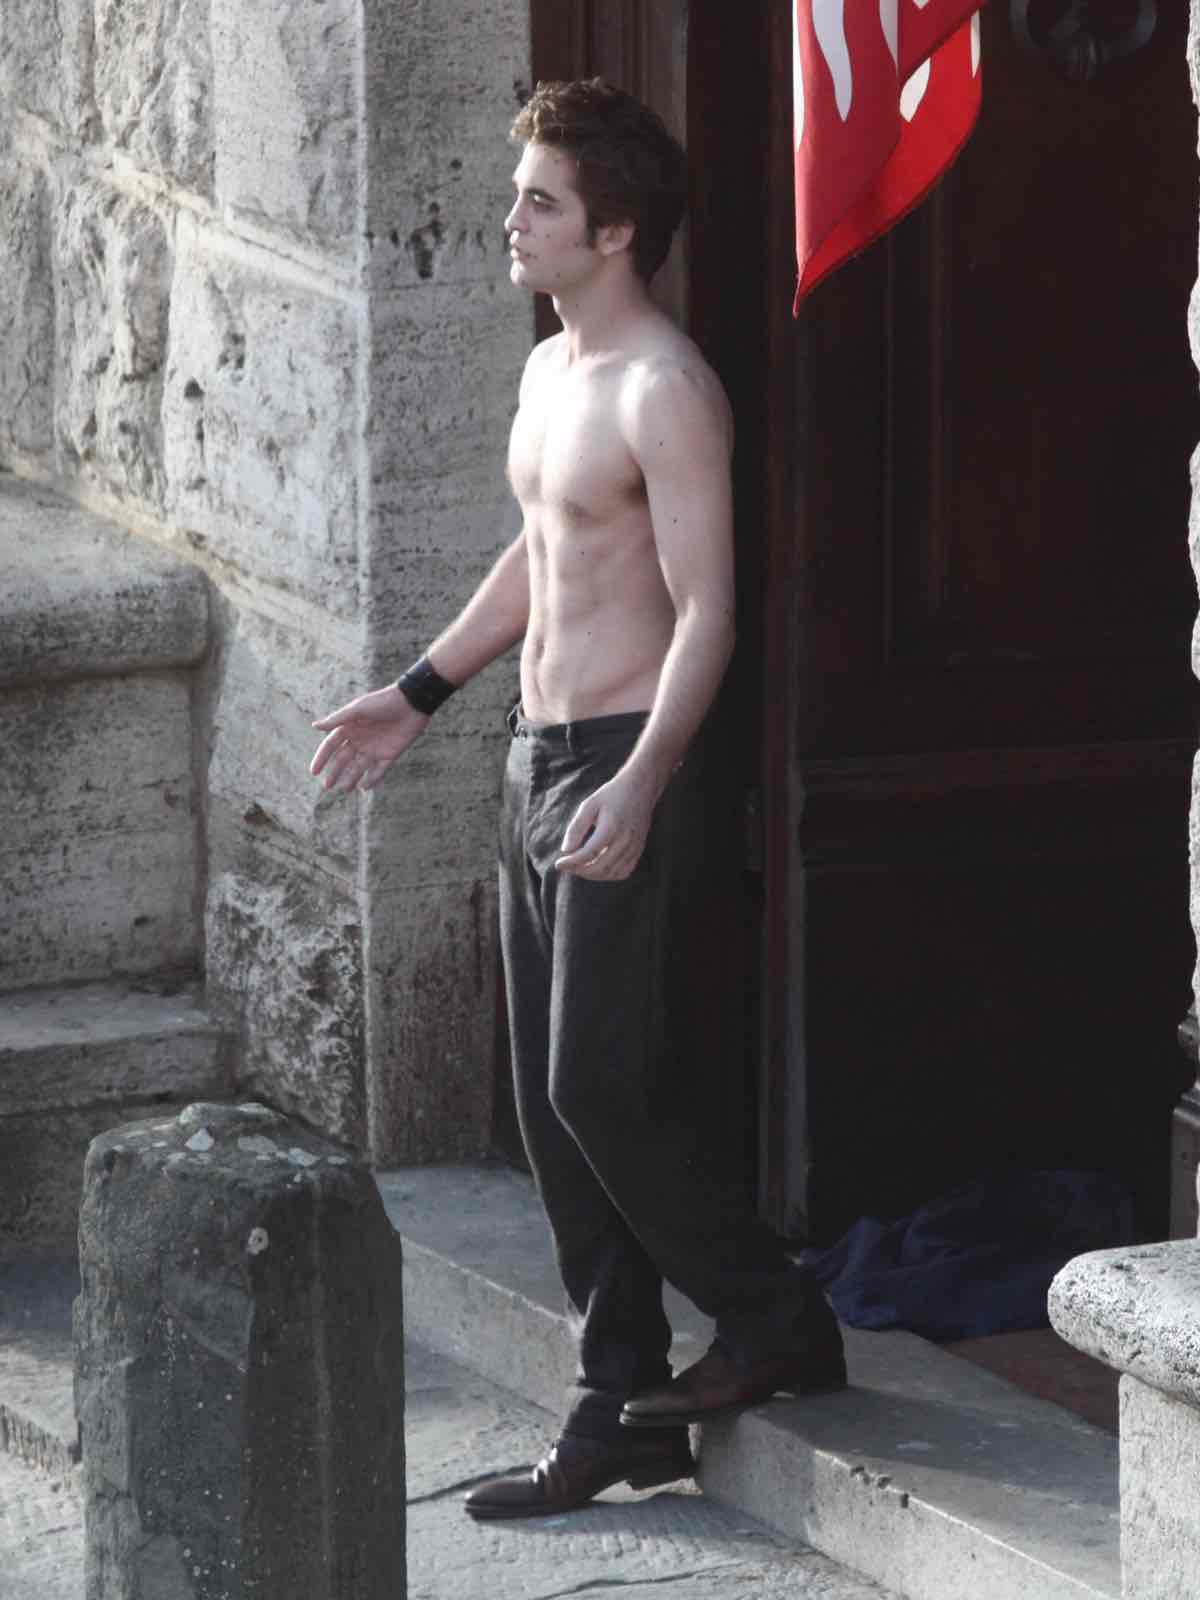 Robert Pattinson Shirtless in Italy While Shooting New Moon